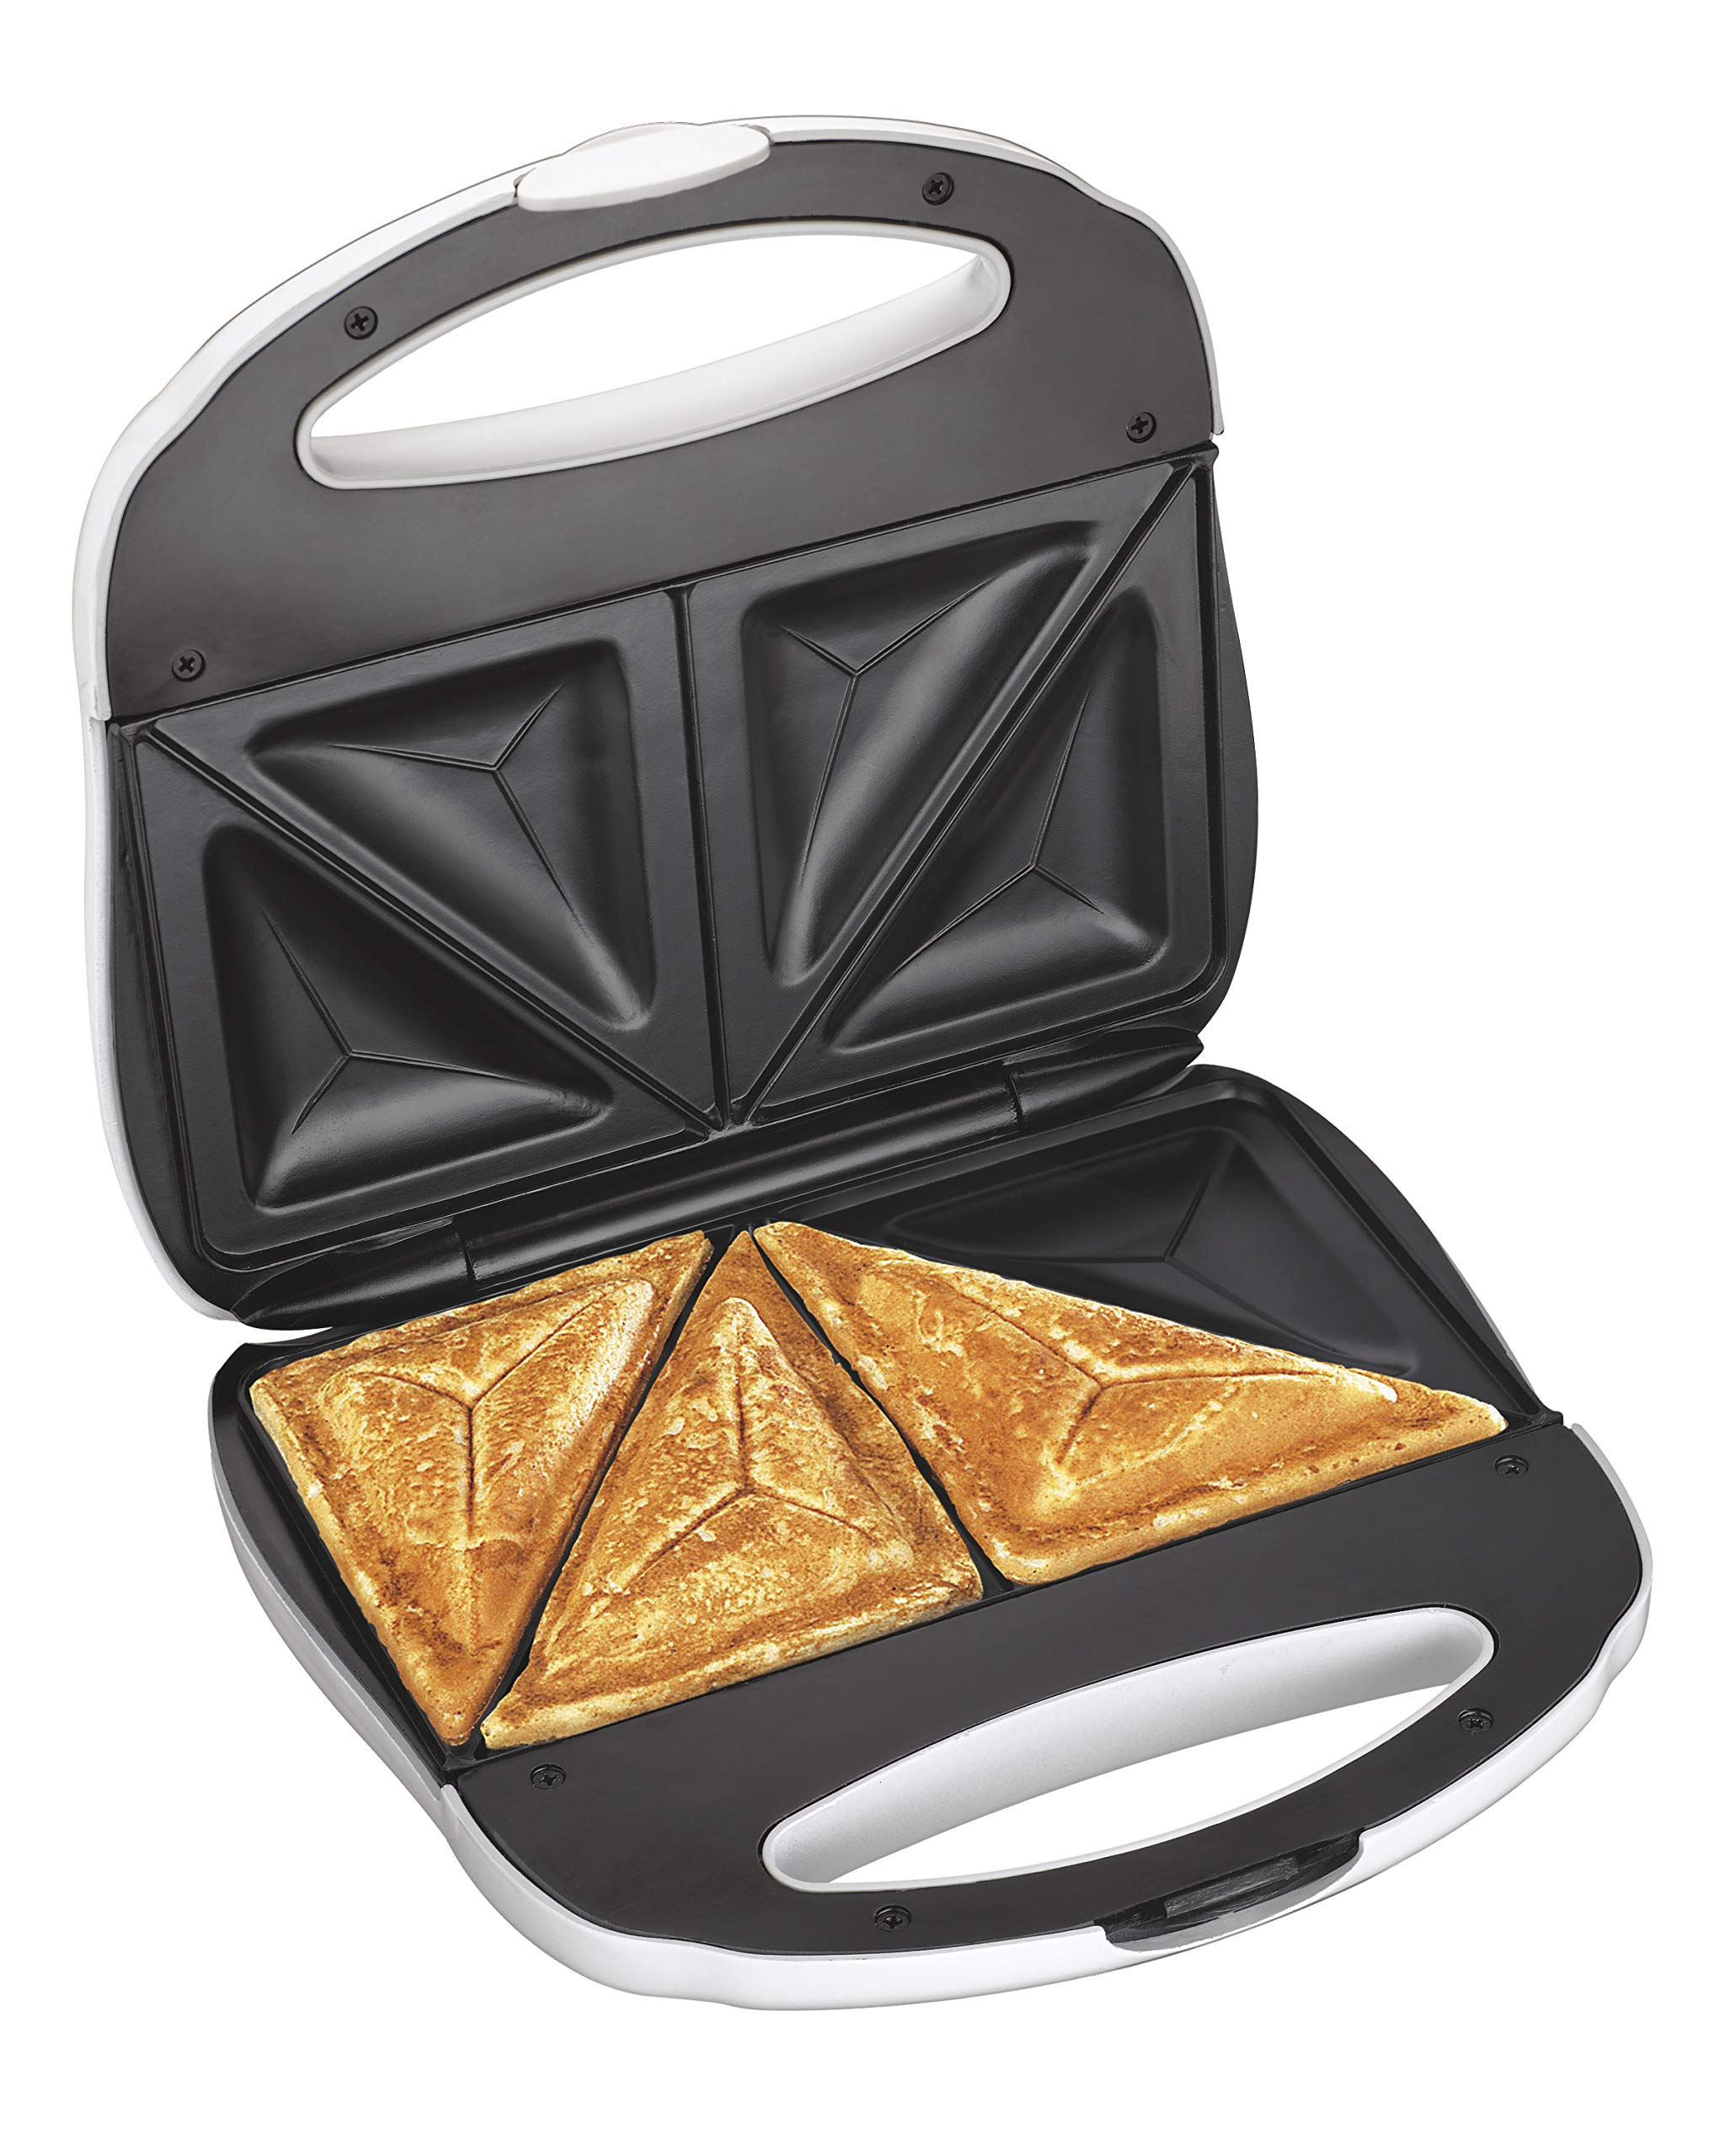 Proctor Silex Sandwich Toaster, Omellete and Turnover Maker, White (25408Y) by Proctor Silex